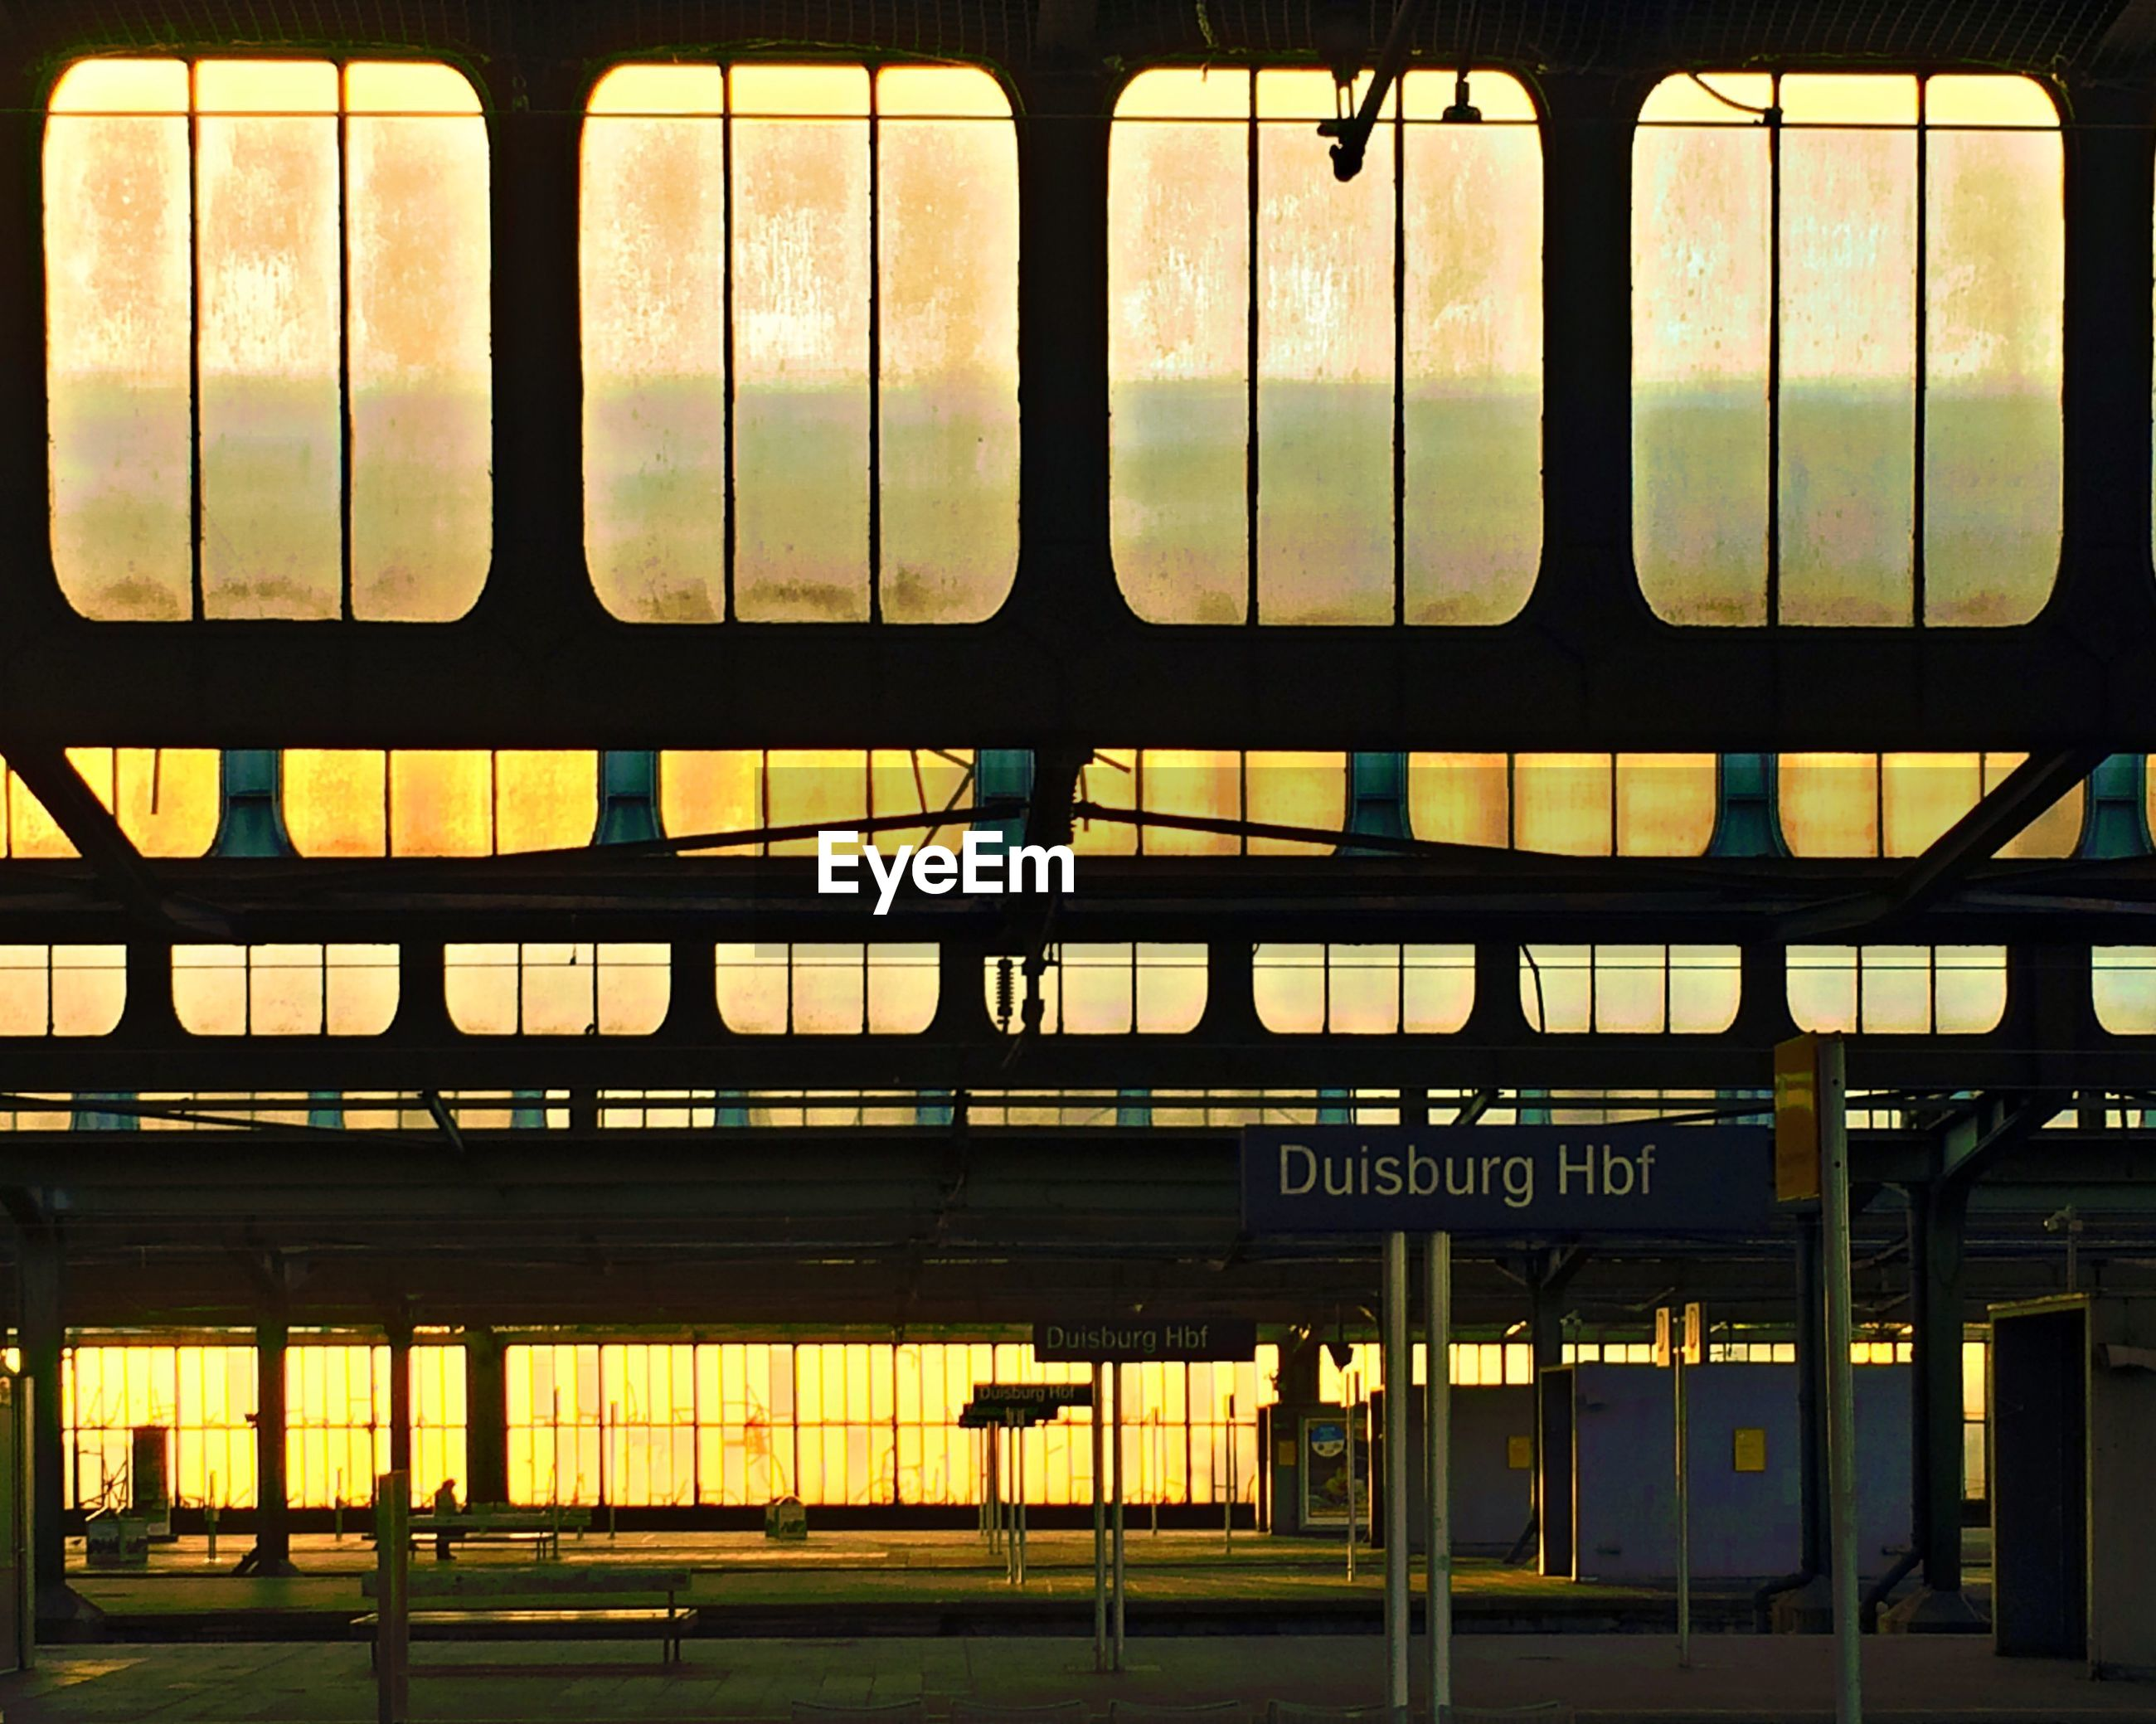 sunset, yellow, architecture, window, built structure, orange color, indoors, railroad station, public transportation, illuminated, transportation, rail transportation, sky, no people, railing, glass - material, text, building exterior, railroad station platform, fence